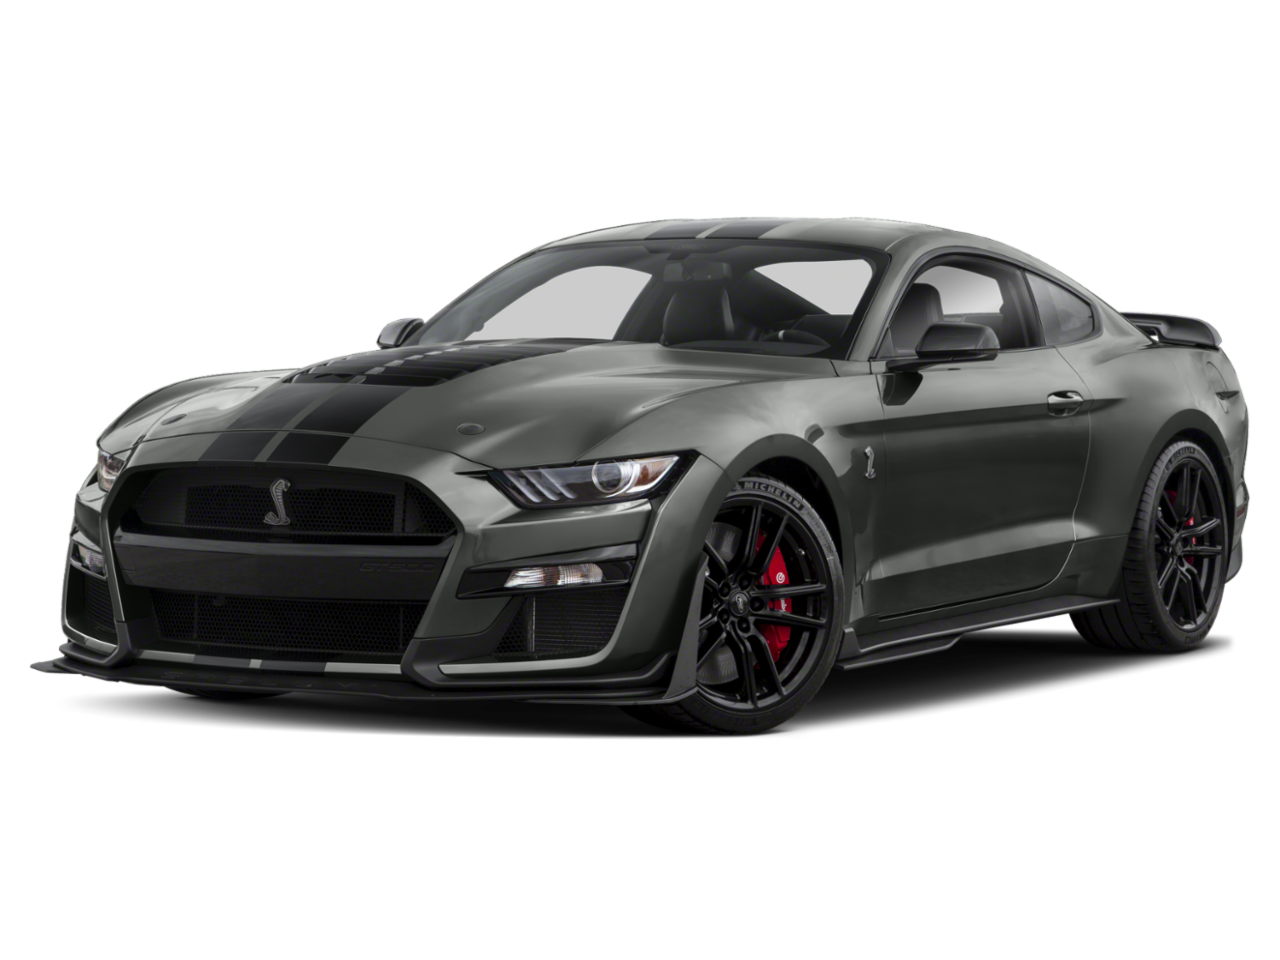 2020 Ford Mustang Shelby GT500 2dr Car